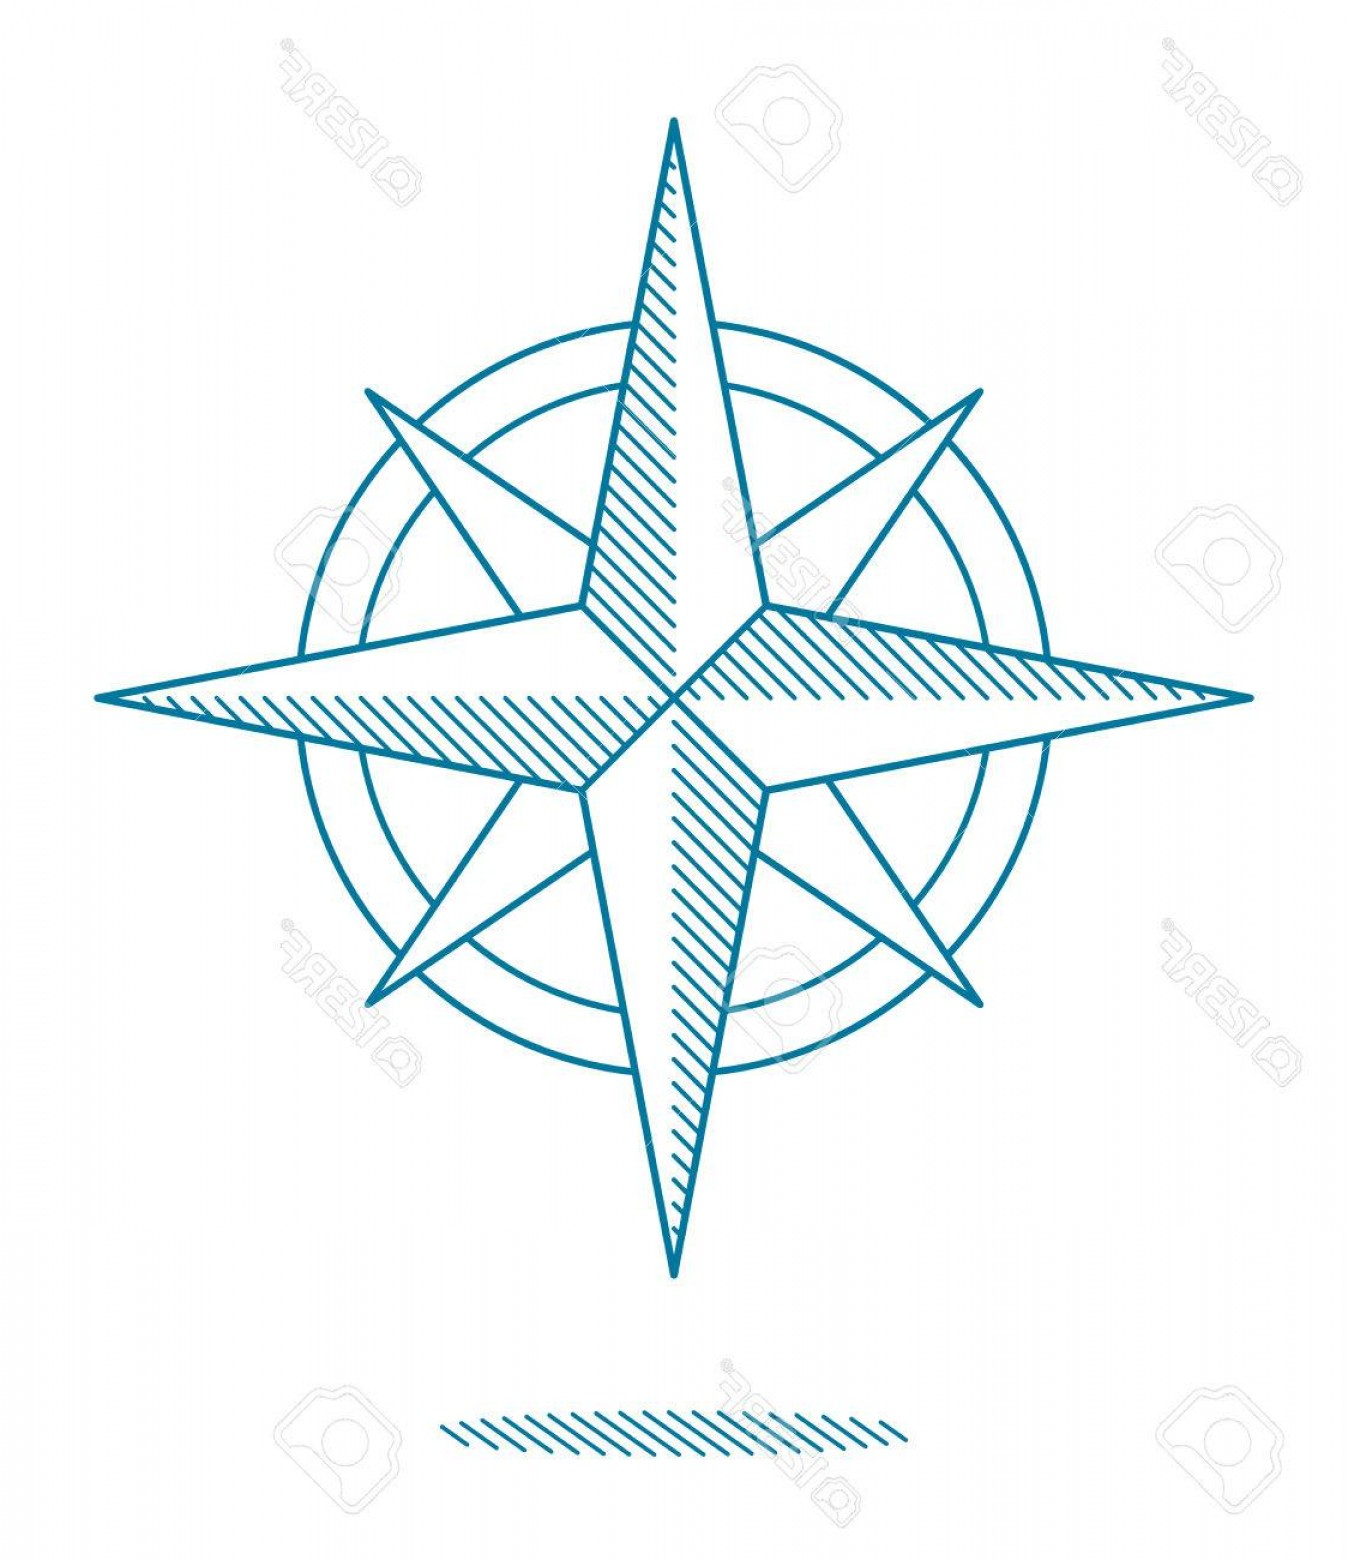 4 Point Nautical Star Vector: Photostock Vector Blue Compass Rose Icon With Hatching For Nautical Themed Designs Line Drawing On White